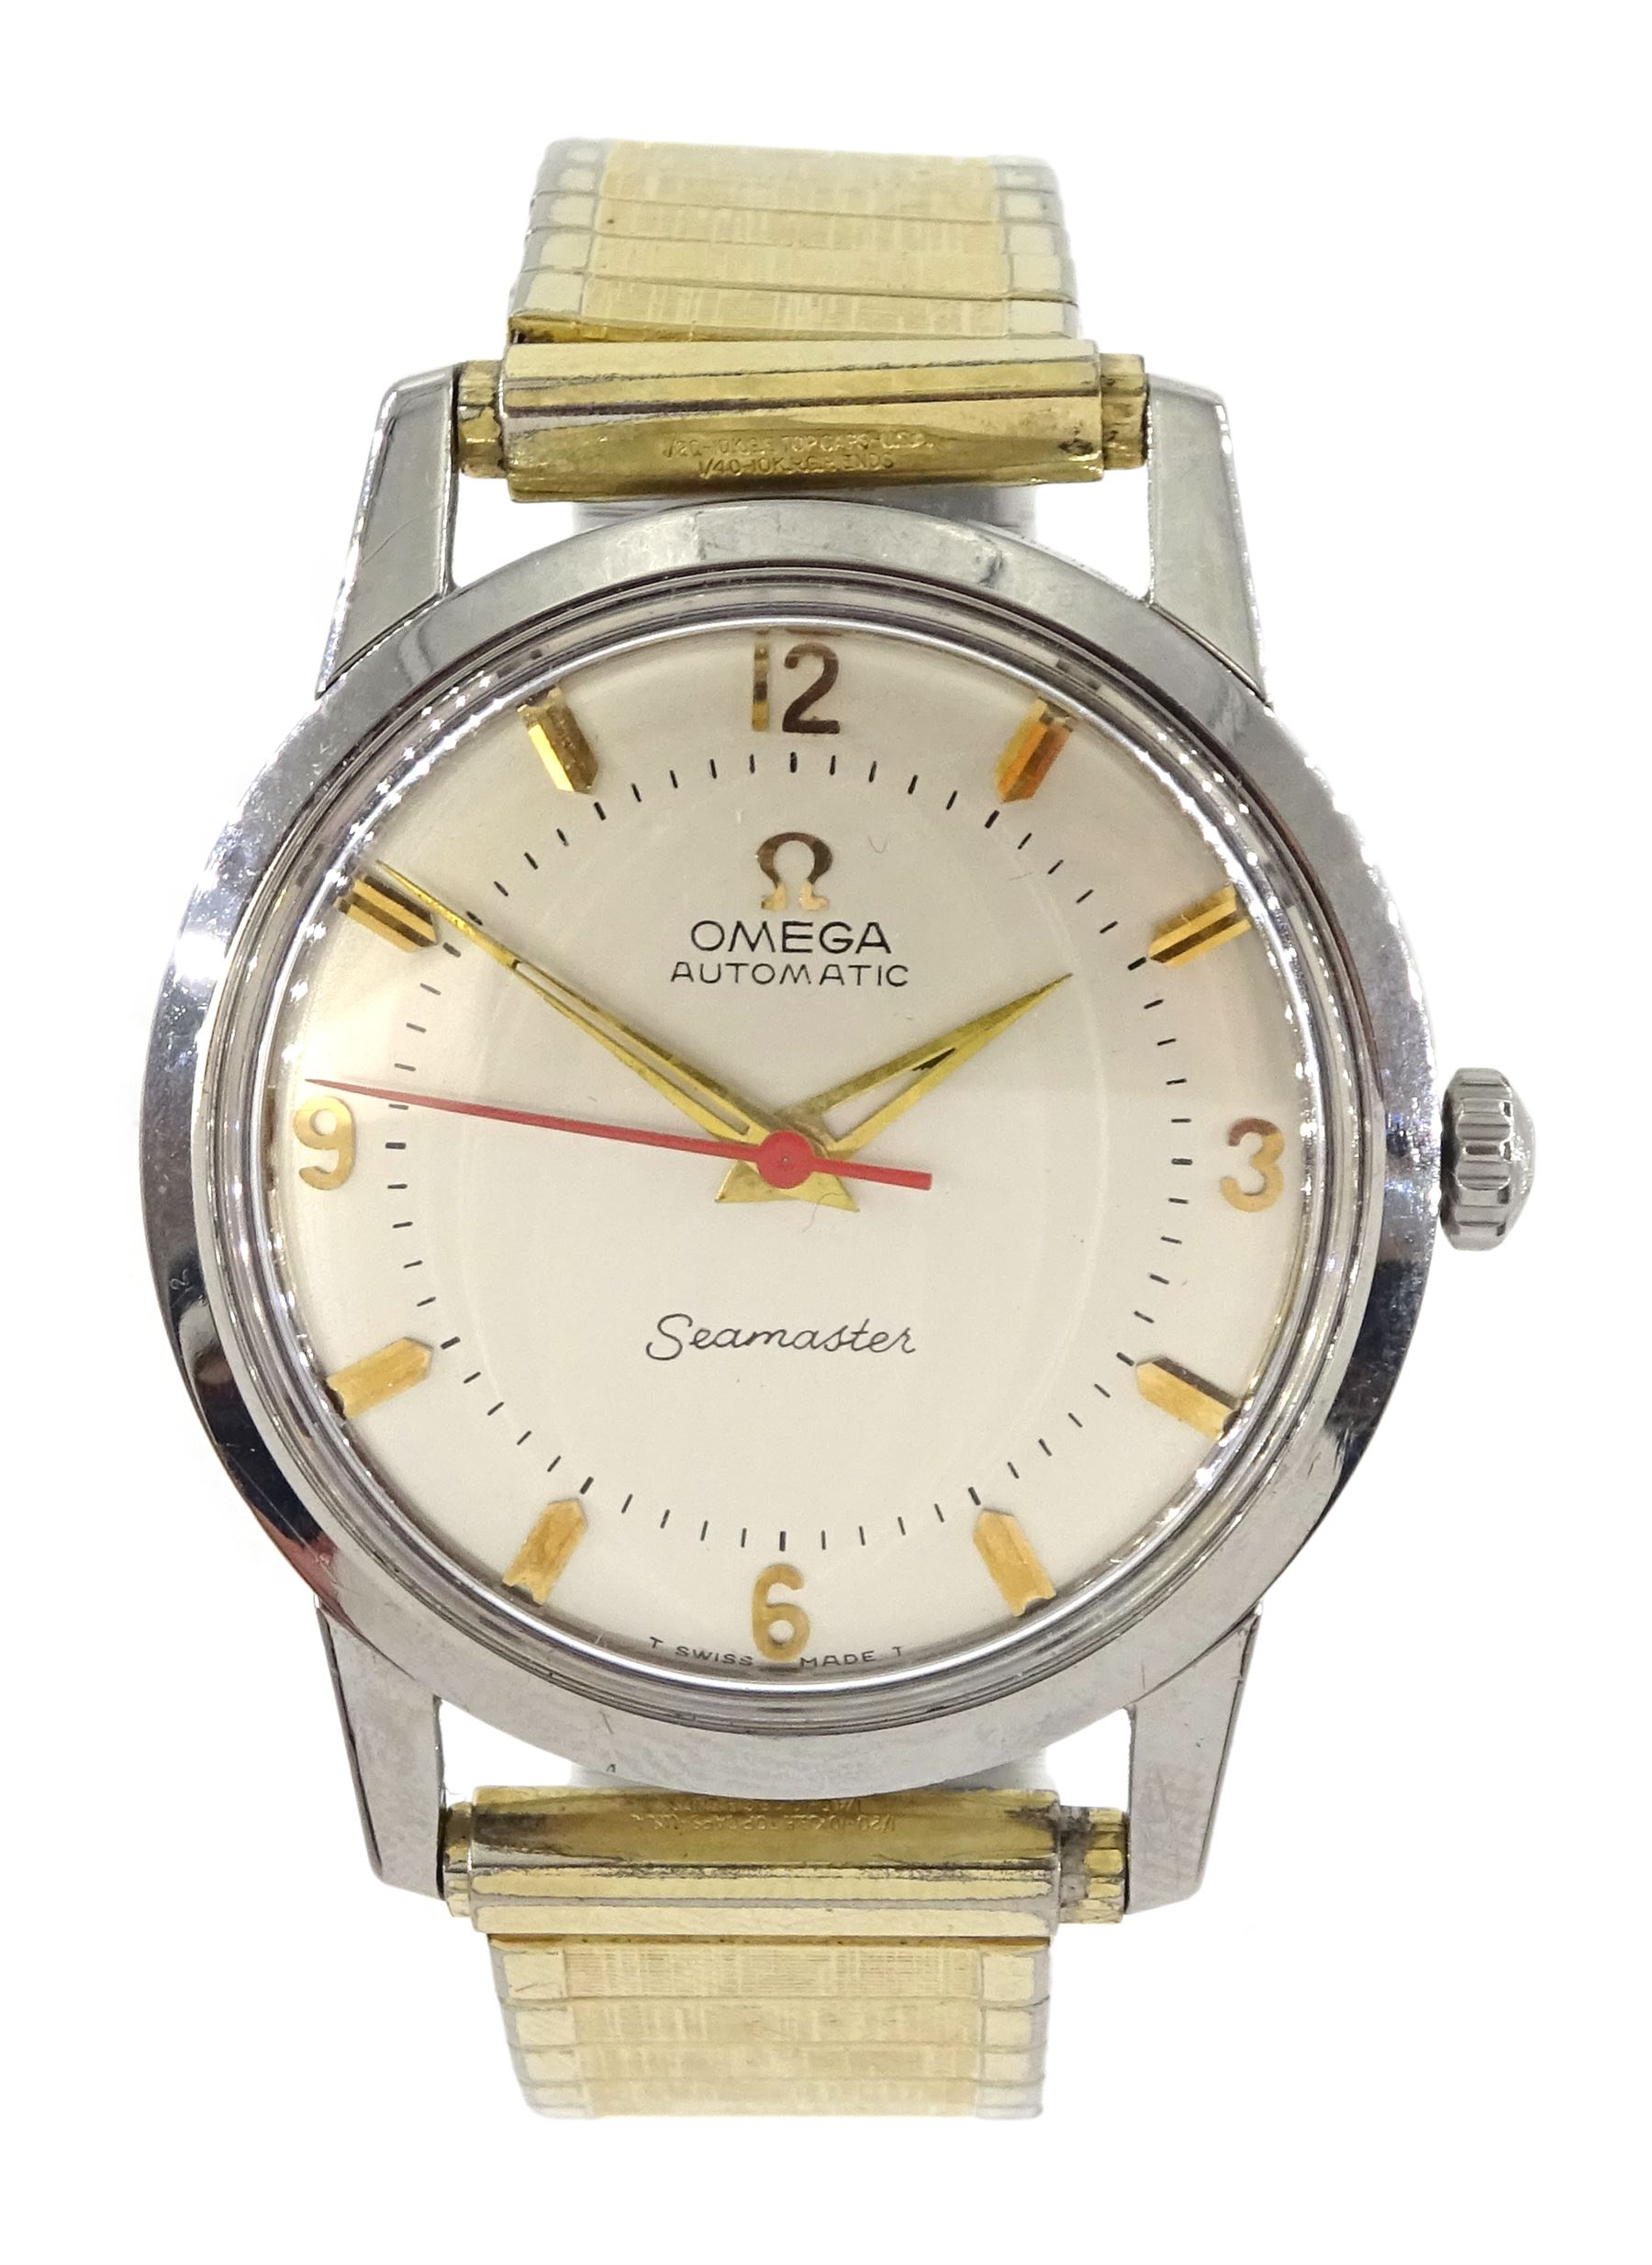 Omega Seamaster automatic gentleman's stainless steel wristwatch